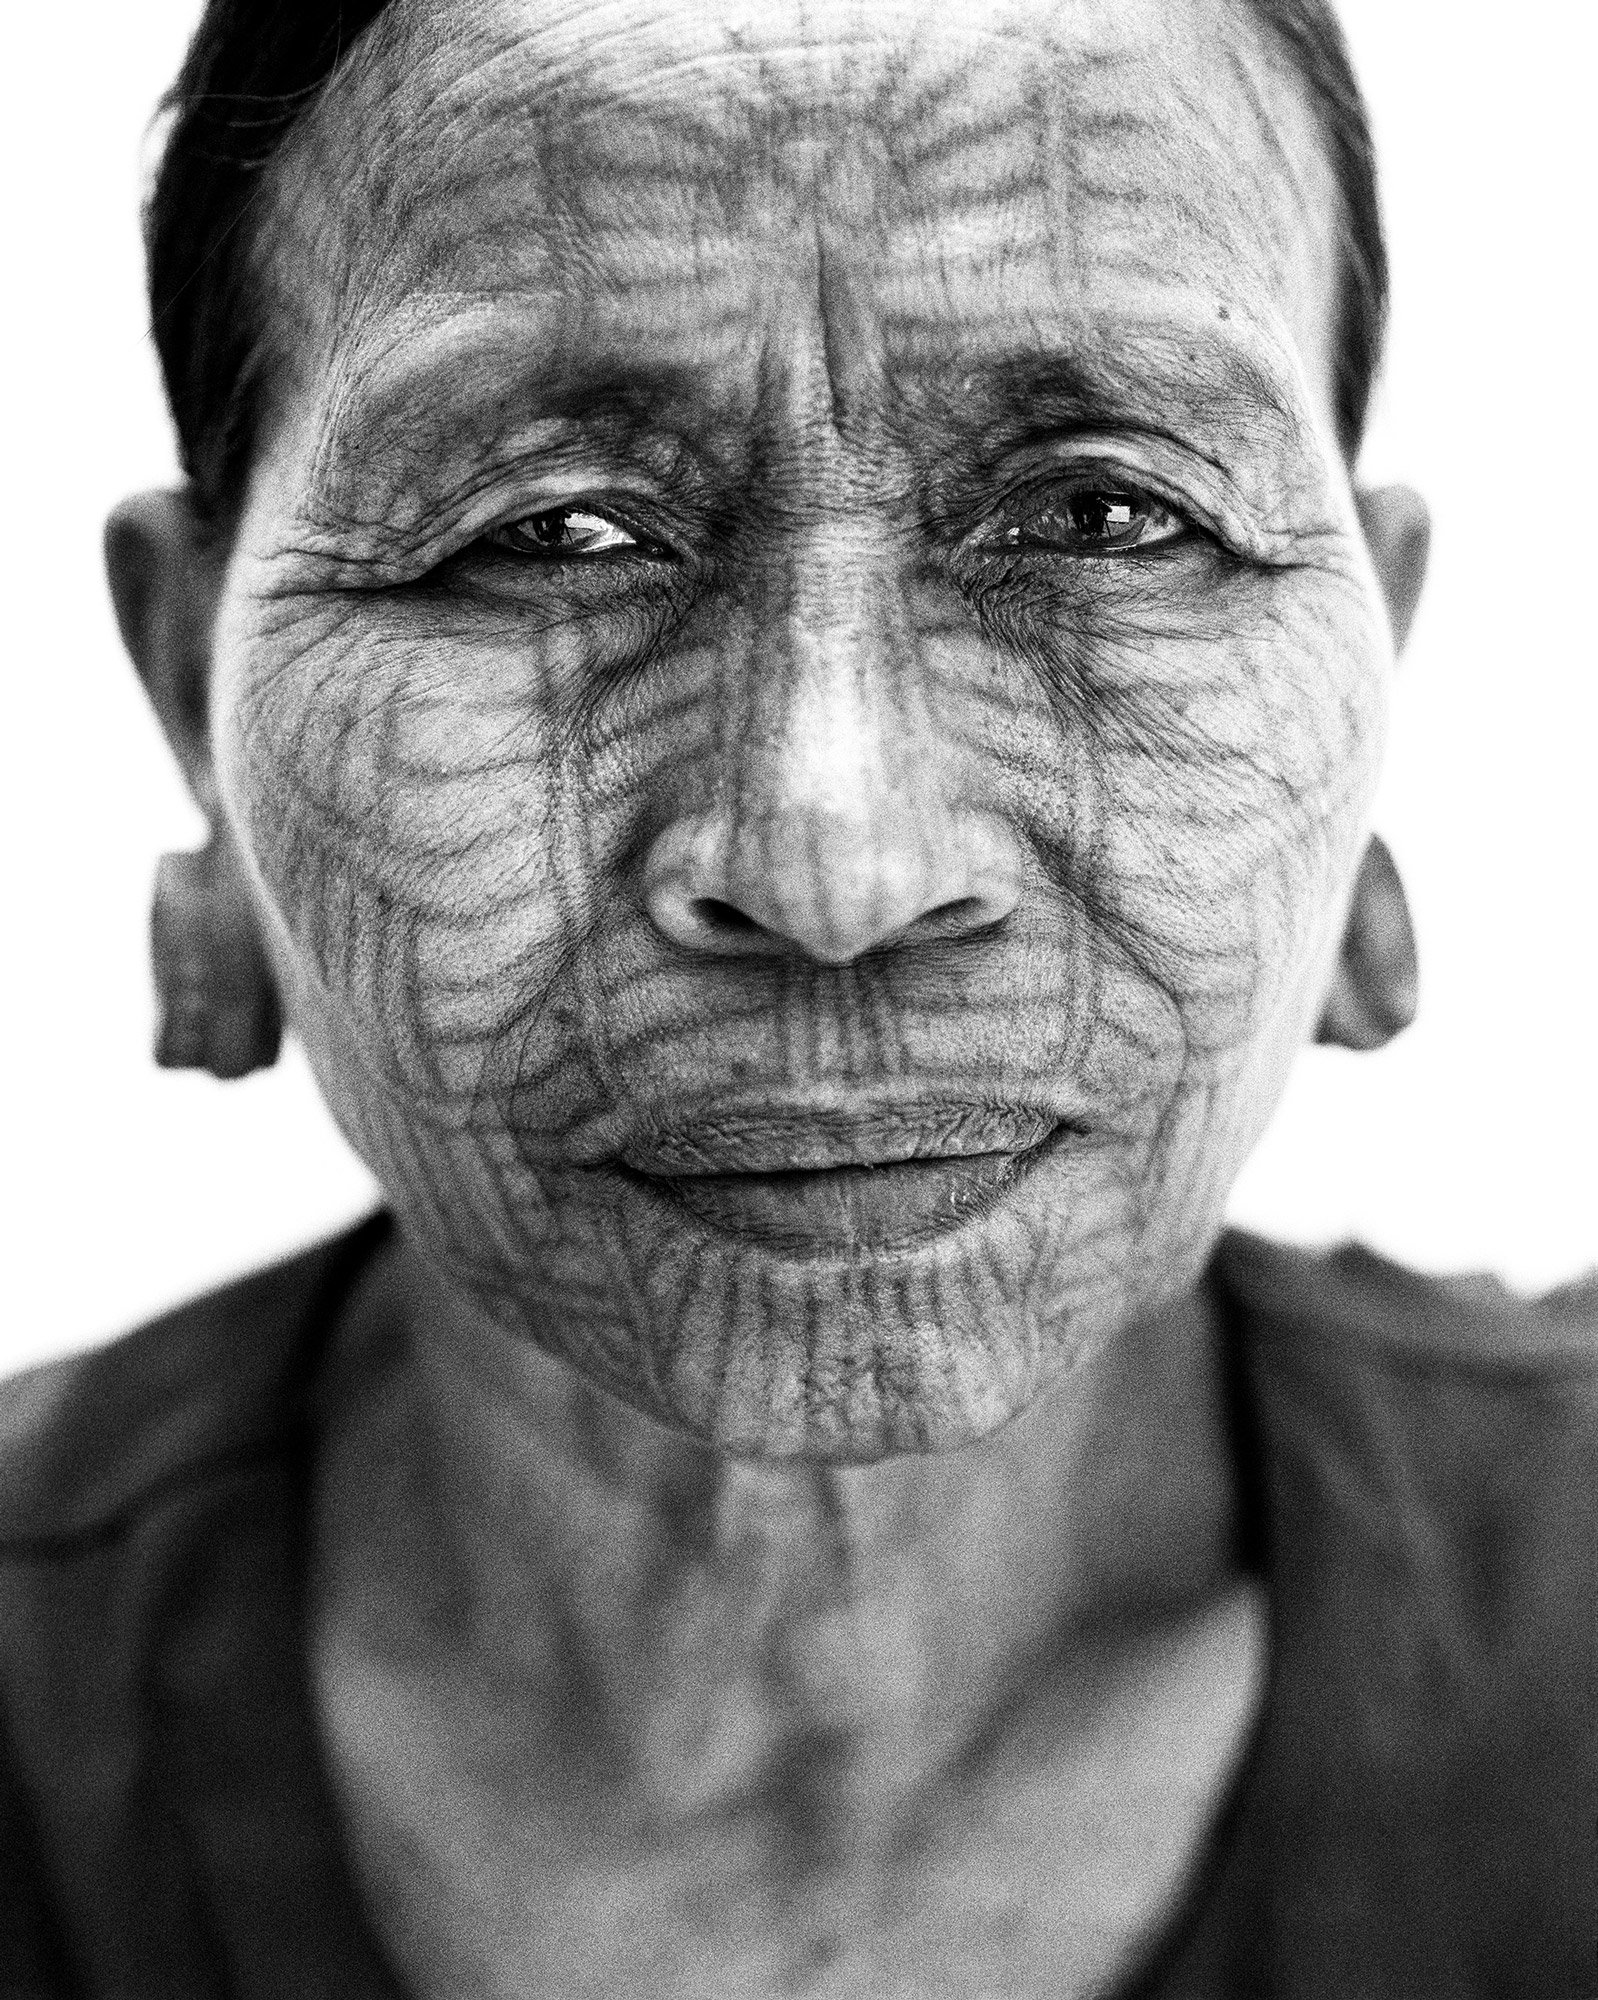 woman portrait in black and white photography in Myanmar by Frédéric Lagrange